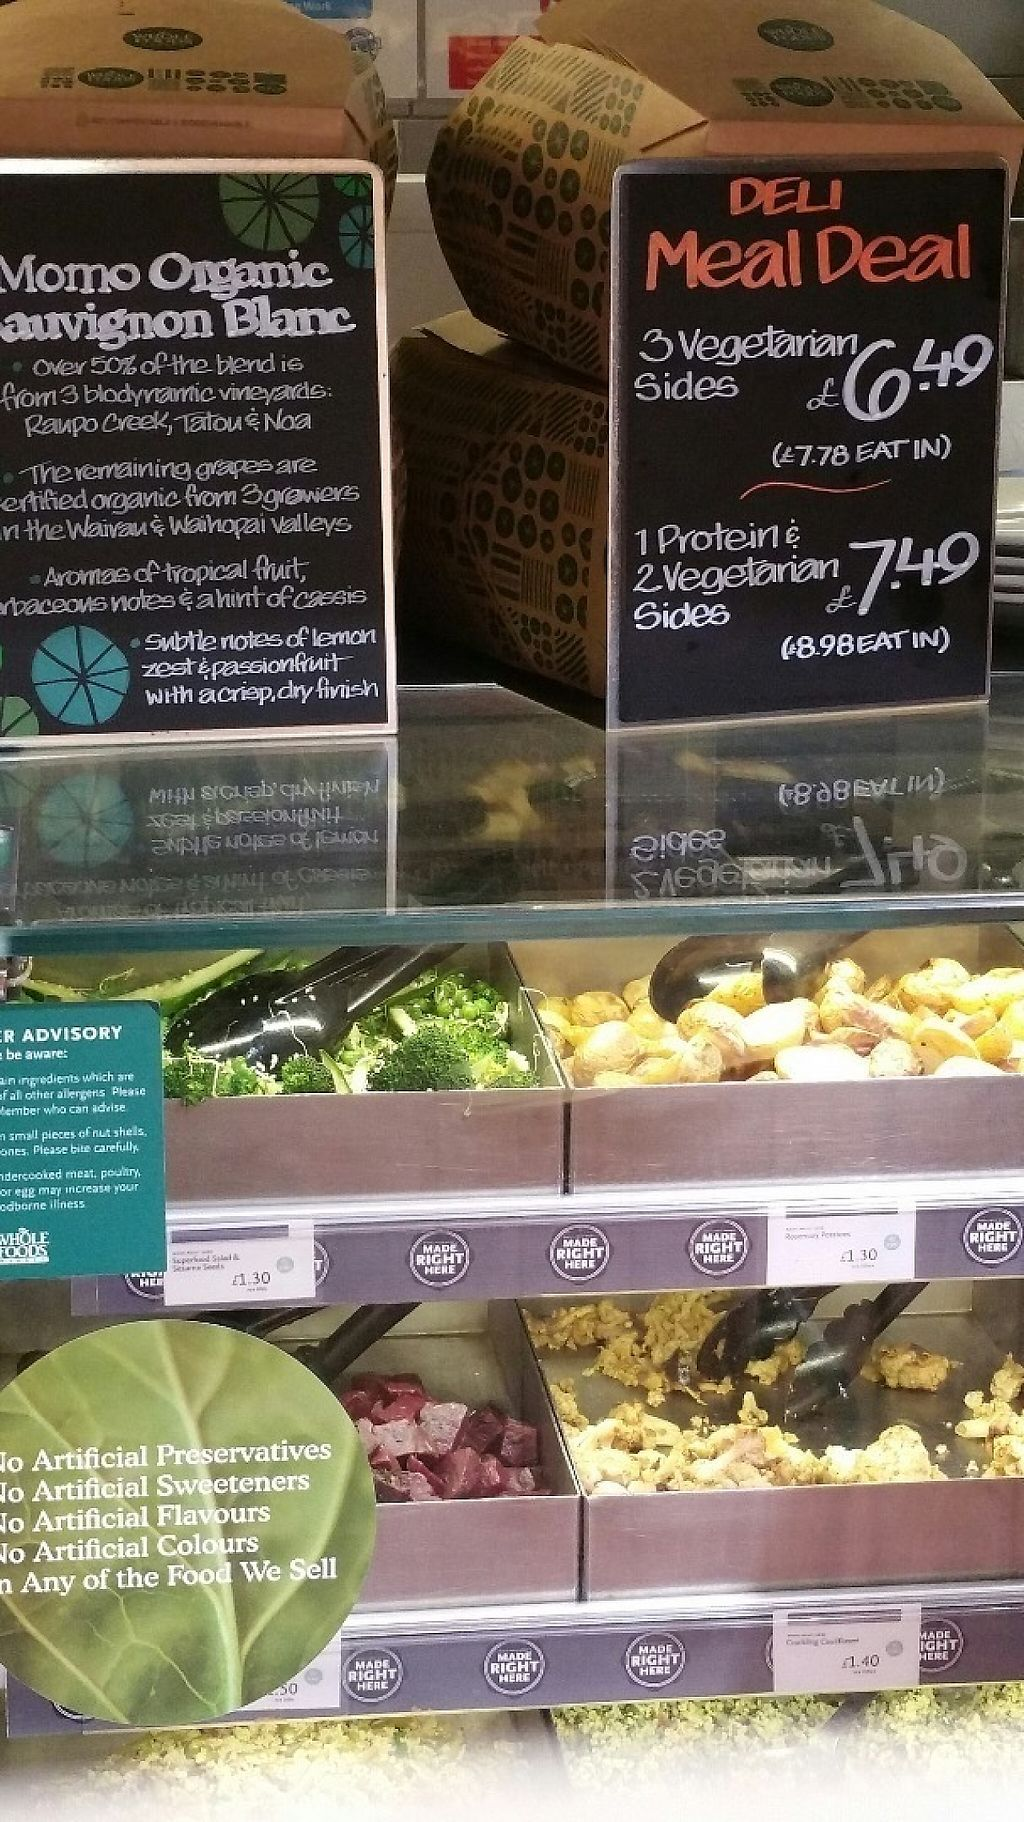 """Photo of Whole Foods Market - Clapham Junction  by <a href=""""/members/profile/jollypig"""">jollypig</a> <br/>The cafe counter <br/> April 29, 2017  - <a href='/contact/abuse/image/736/253715'>Report</a>"""